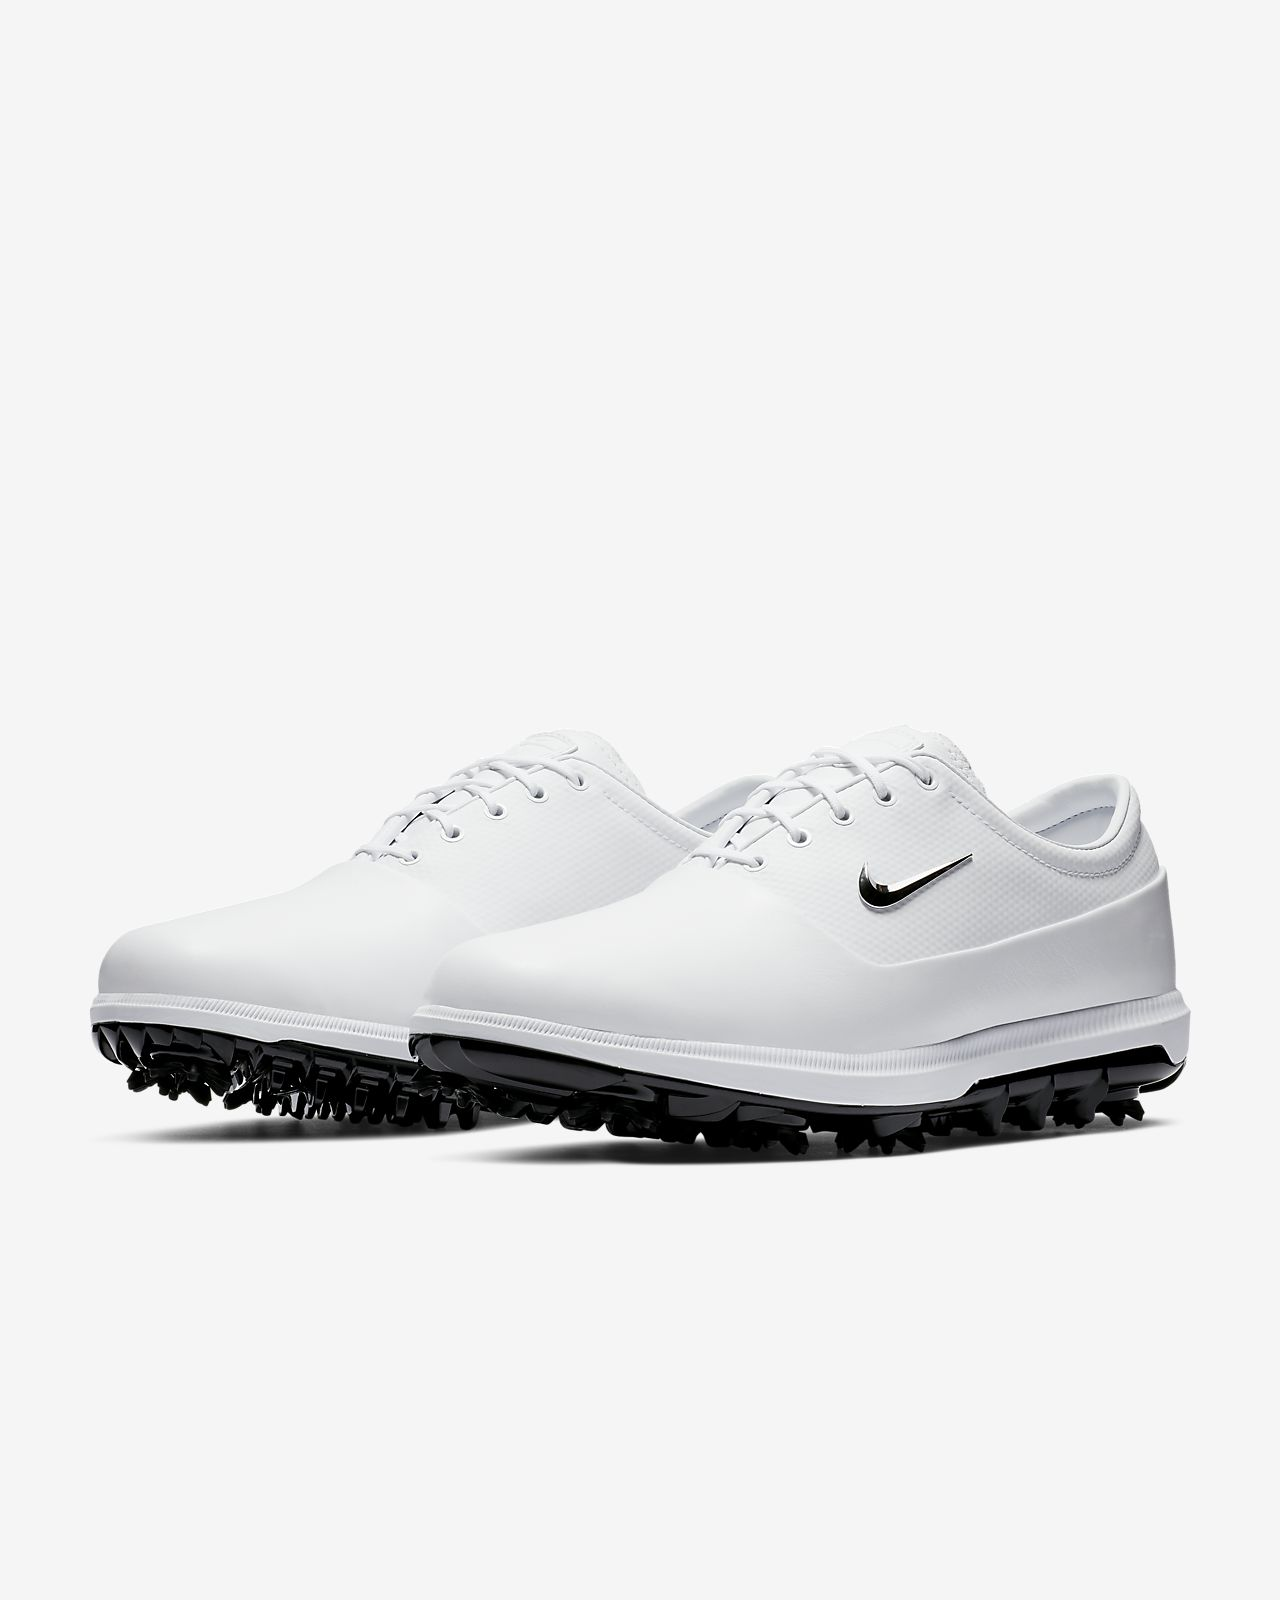 9 Best Golf Shoes for Men & Women Mens and Womens Golf